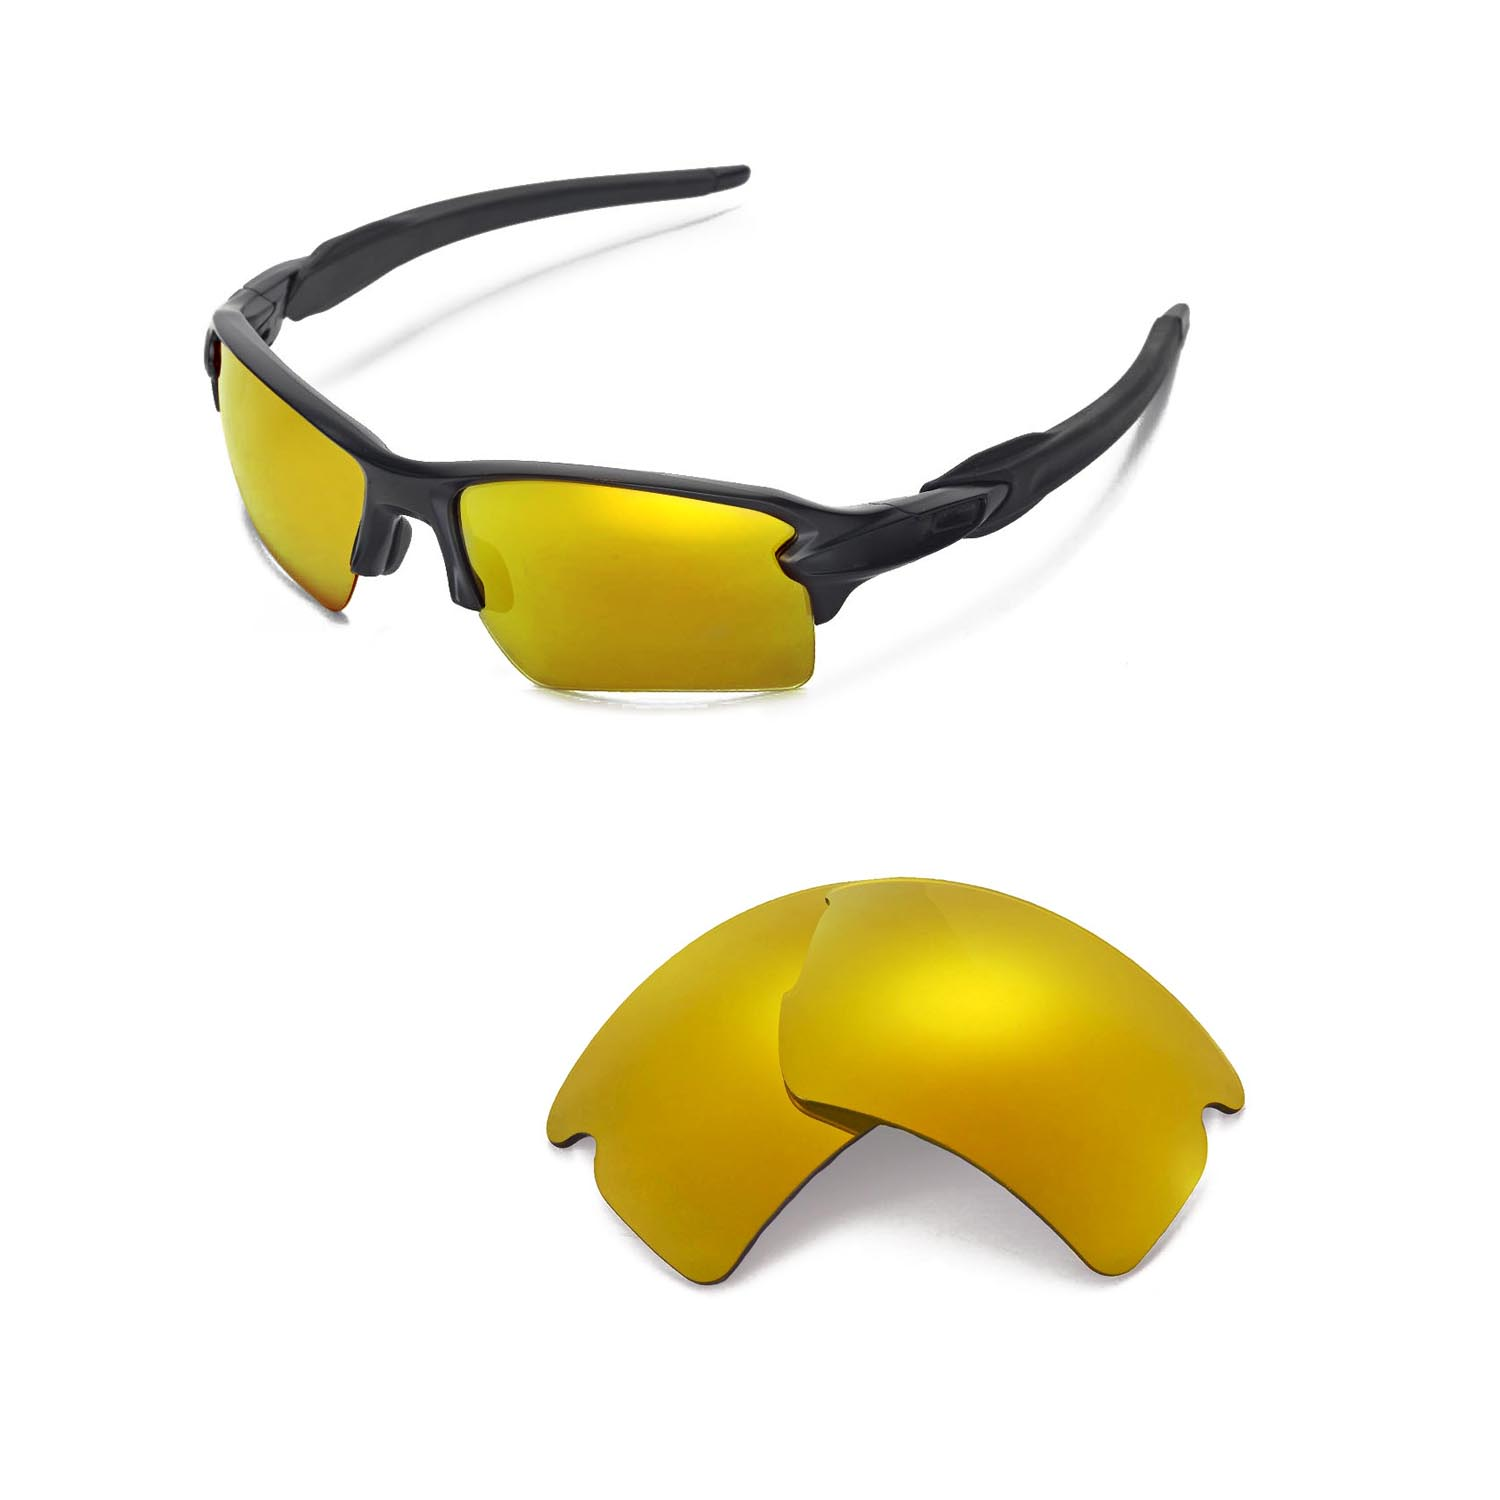 35127082cb2b6 Details about Walleva Polarized 24K Gold Replacement Lenses For Oakley Flak  2.0 XL Sunglasses